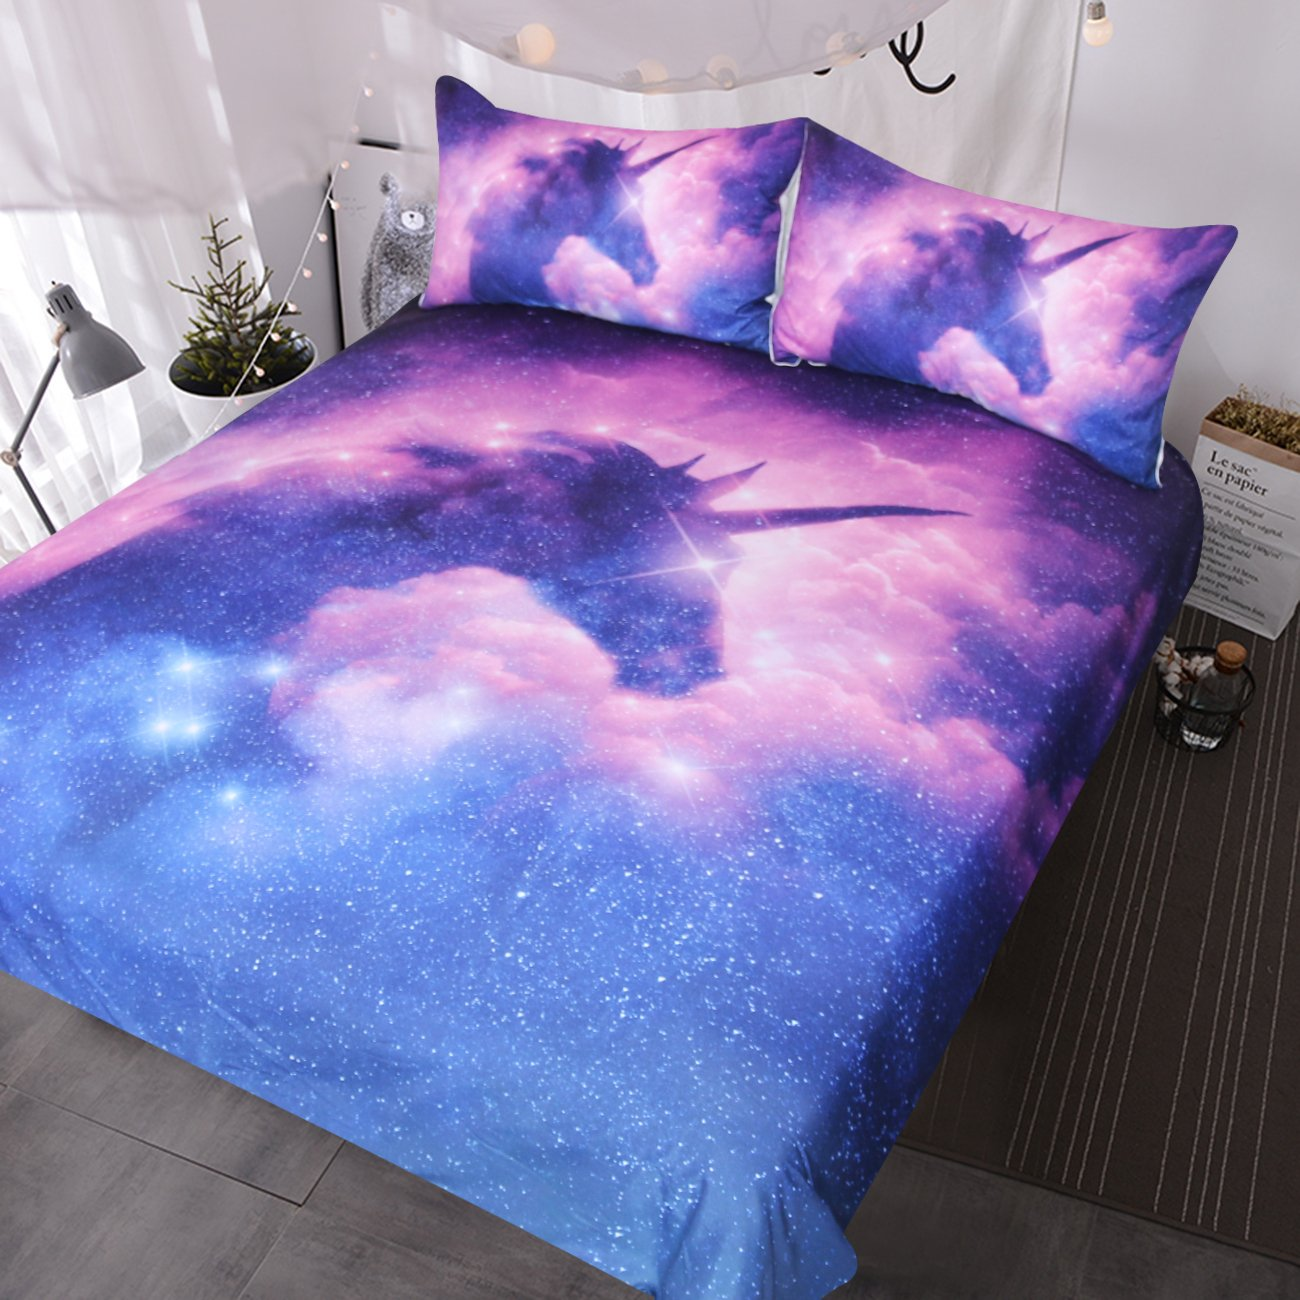 BlessLiving Galaxy Unicorn Bedding Kids Girls Psychedelic Space Duvet Cover 3 Piece Pink Purple Sparkly Unicorn Bedspread (Twin)